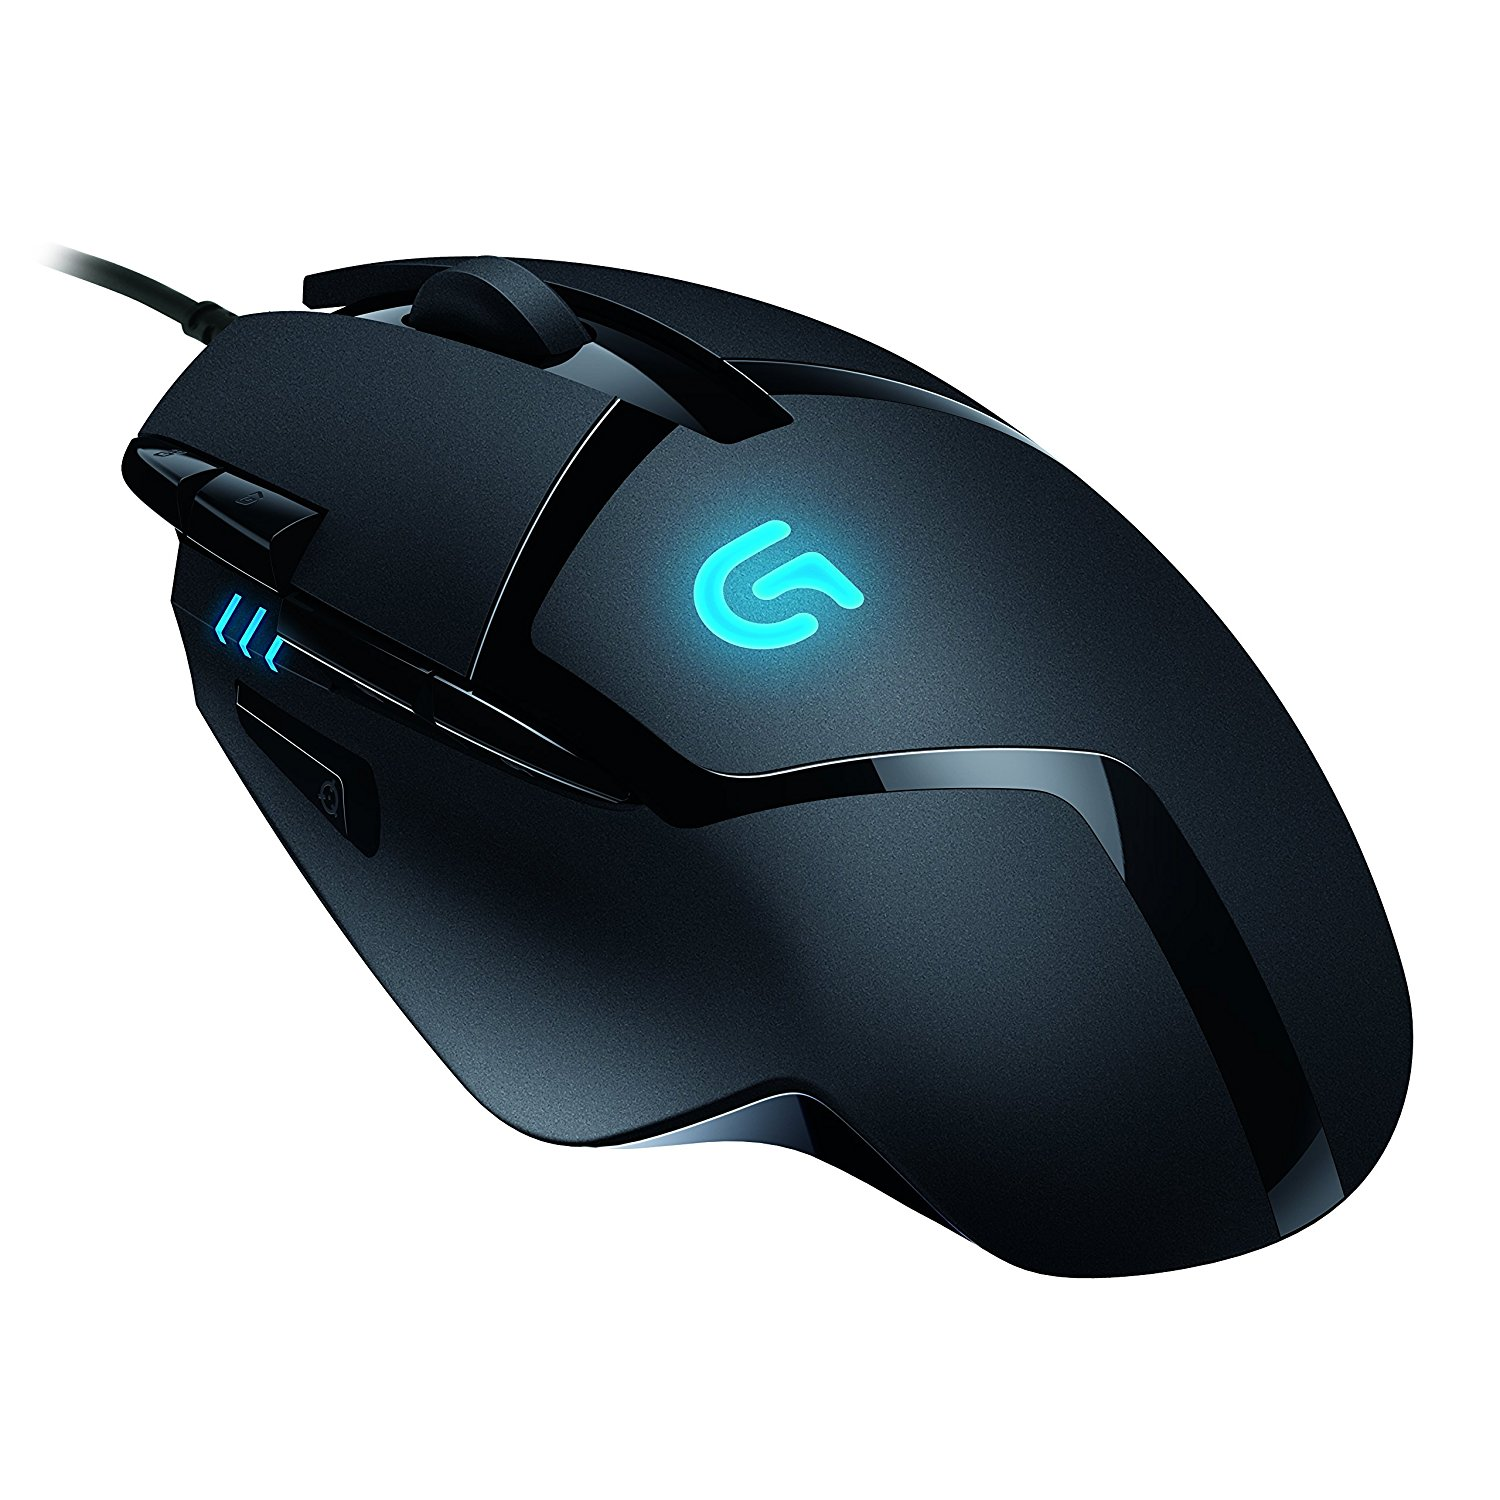 Logitech G402 Gaming Maus amazon